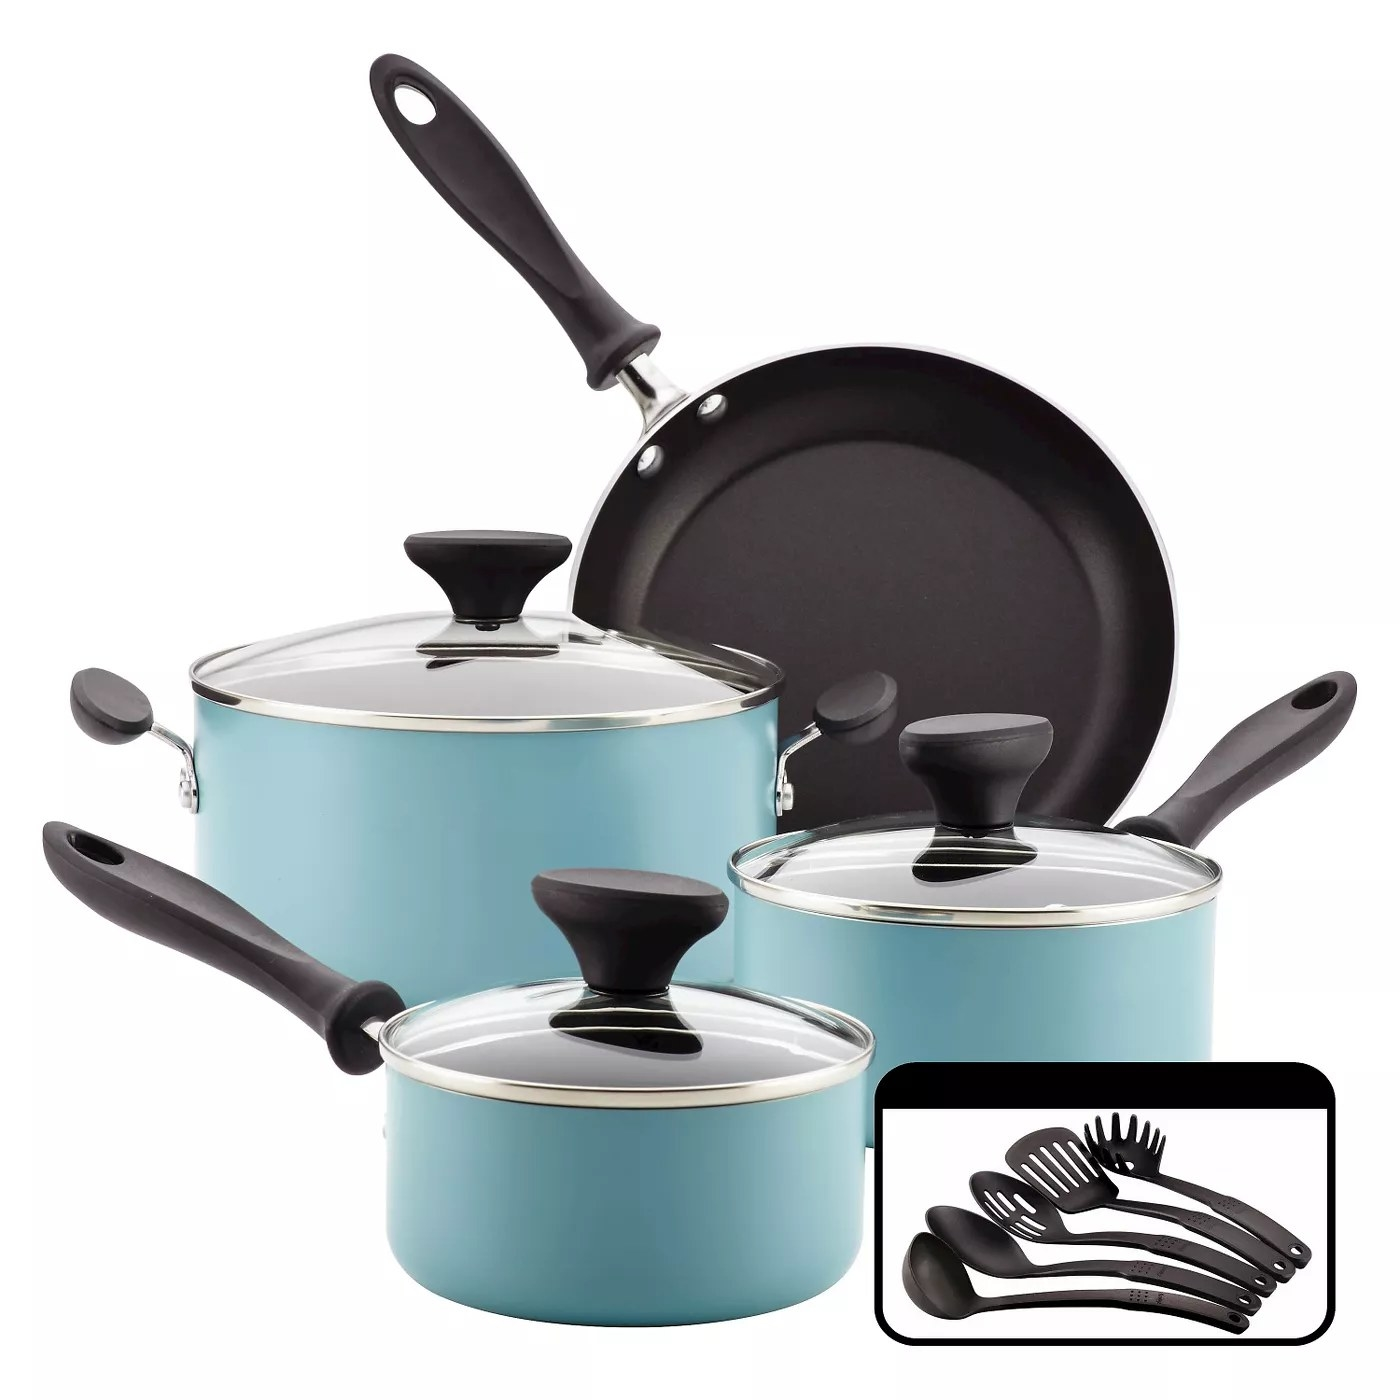 The cookware set in light blue